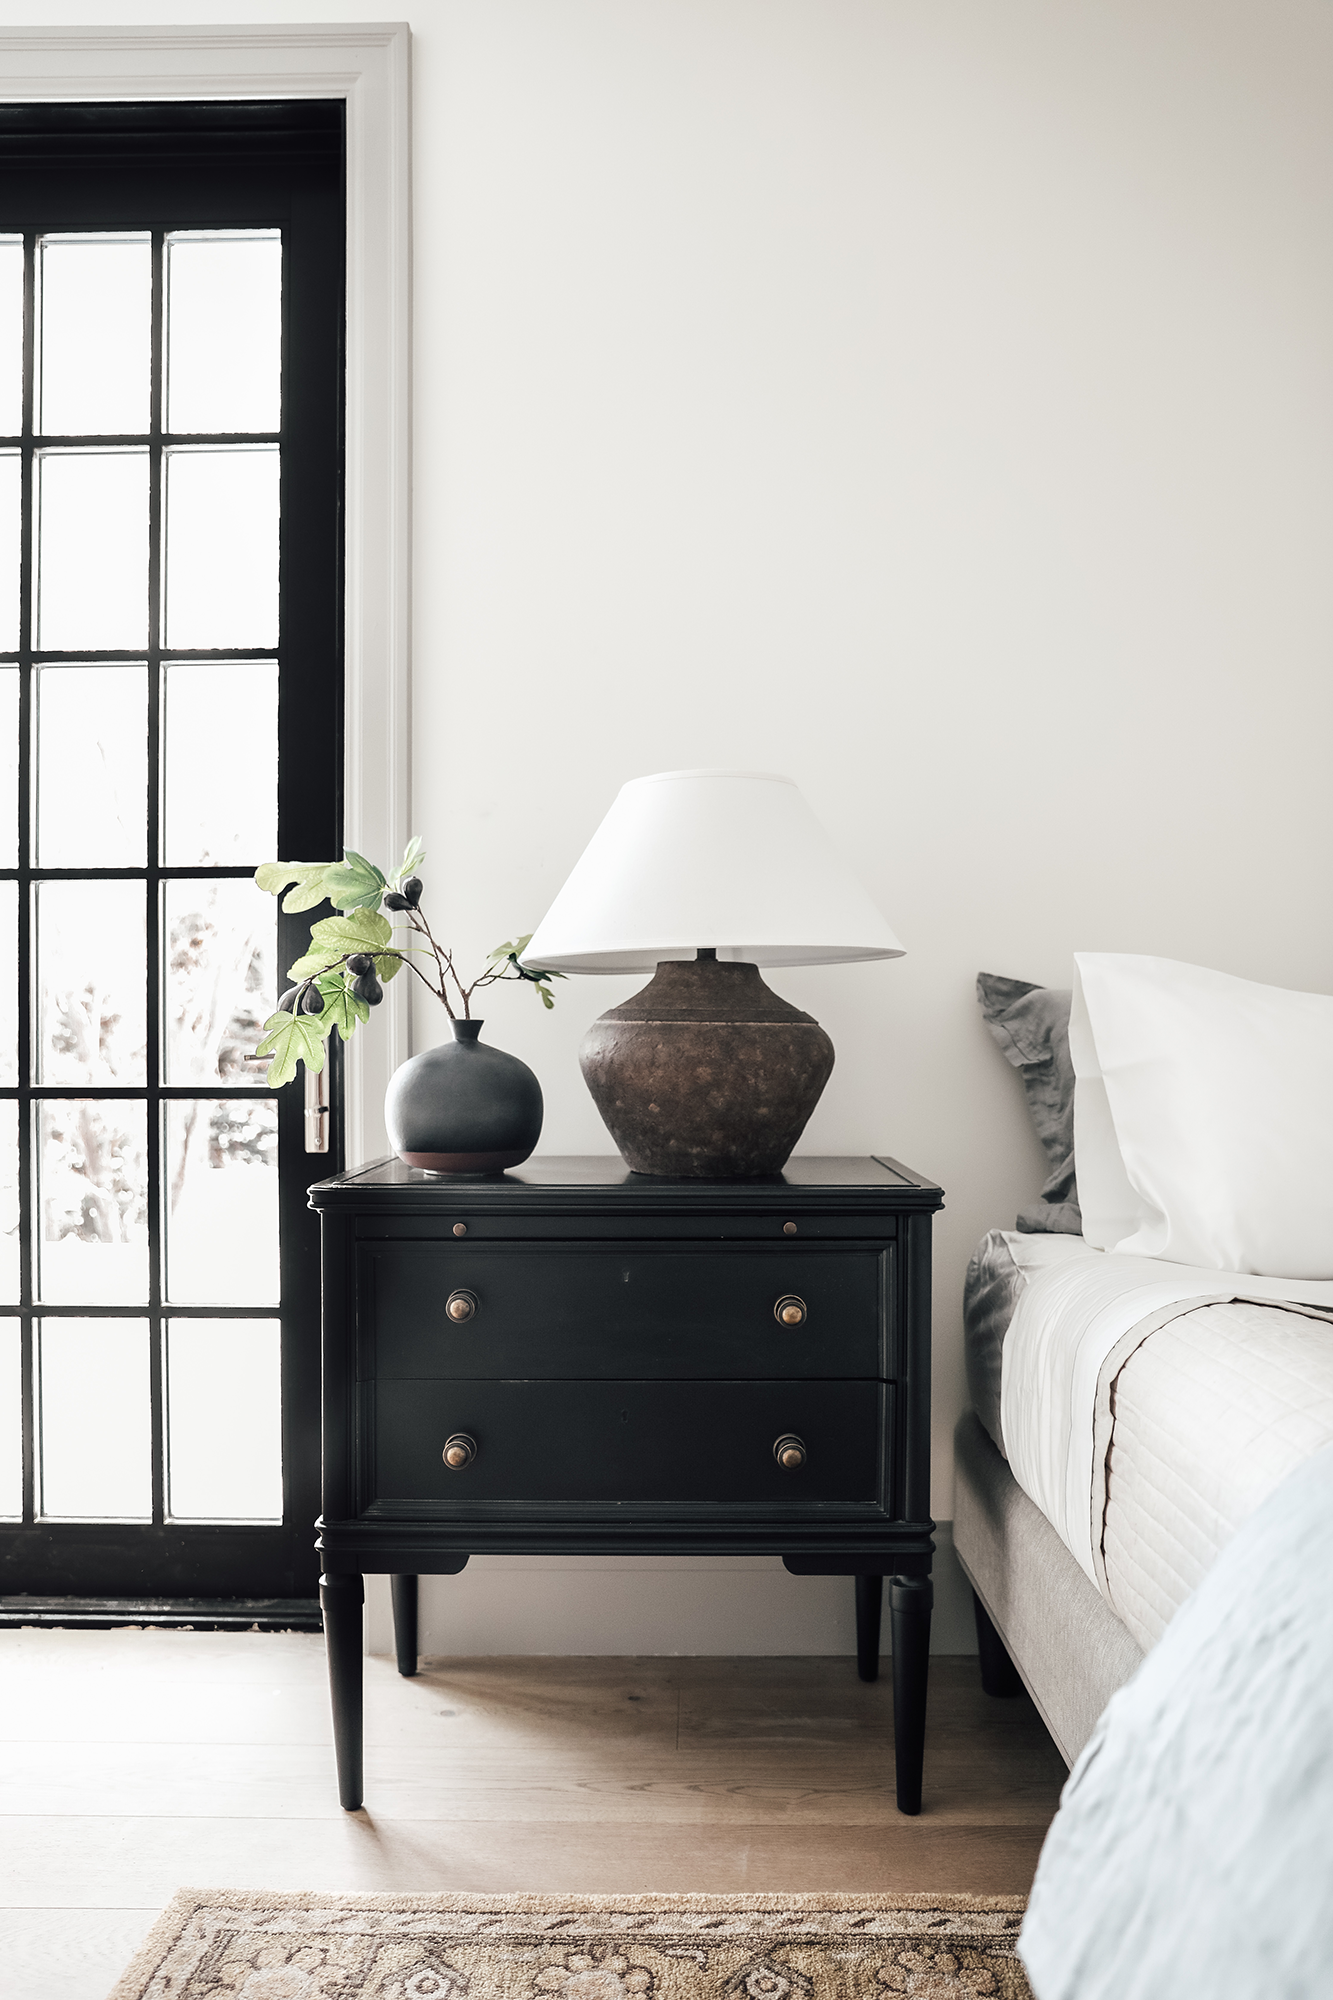 A Few Rules For Bedside Lamps And What Actually Made The Biggest Difference In Our Pantry Makeover In 2020 Guest Bedroom Decor Bedroom Design Bedroom Decor